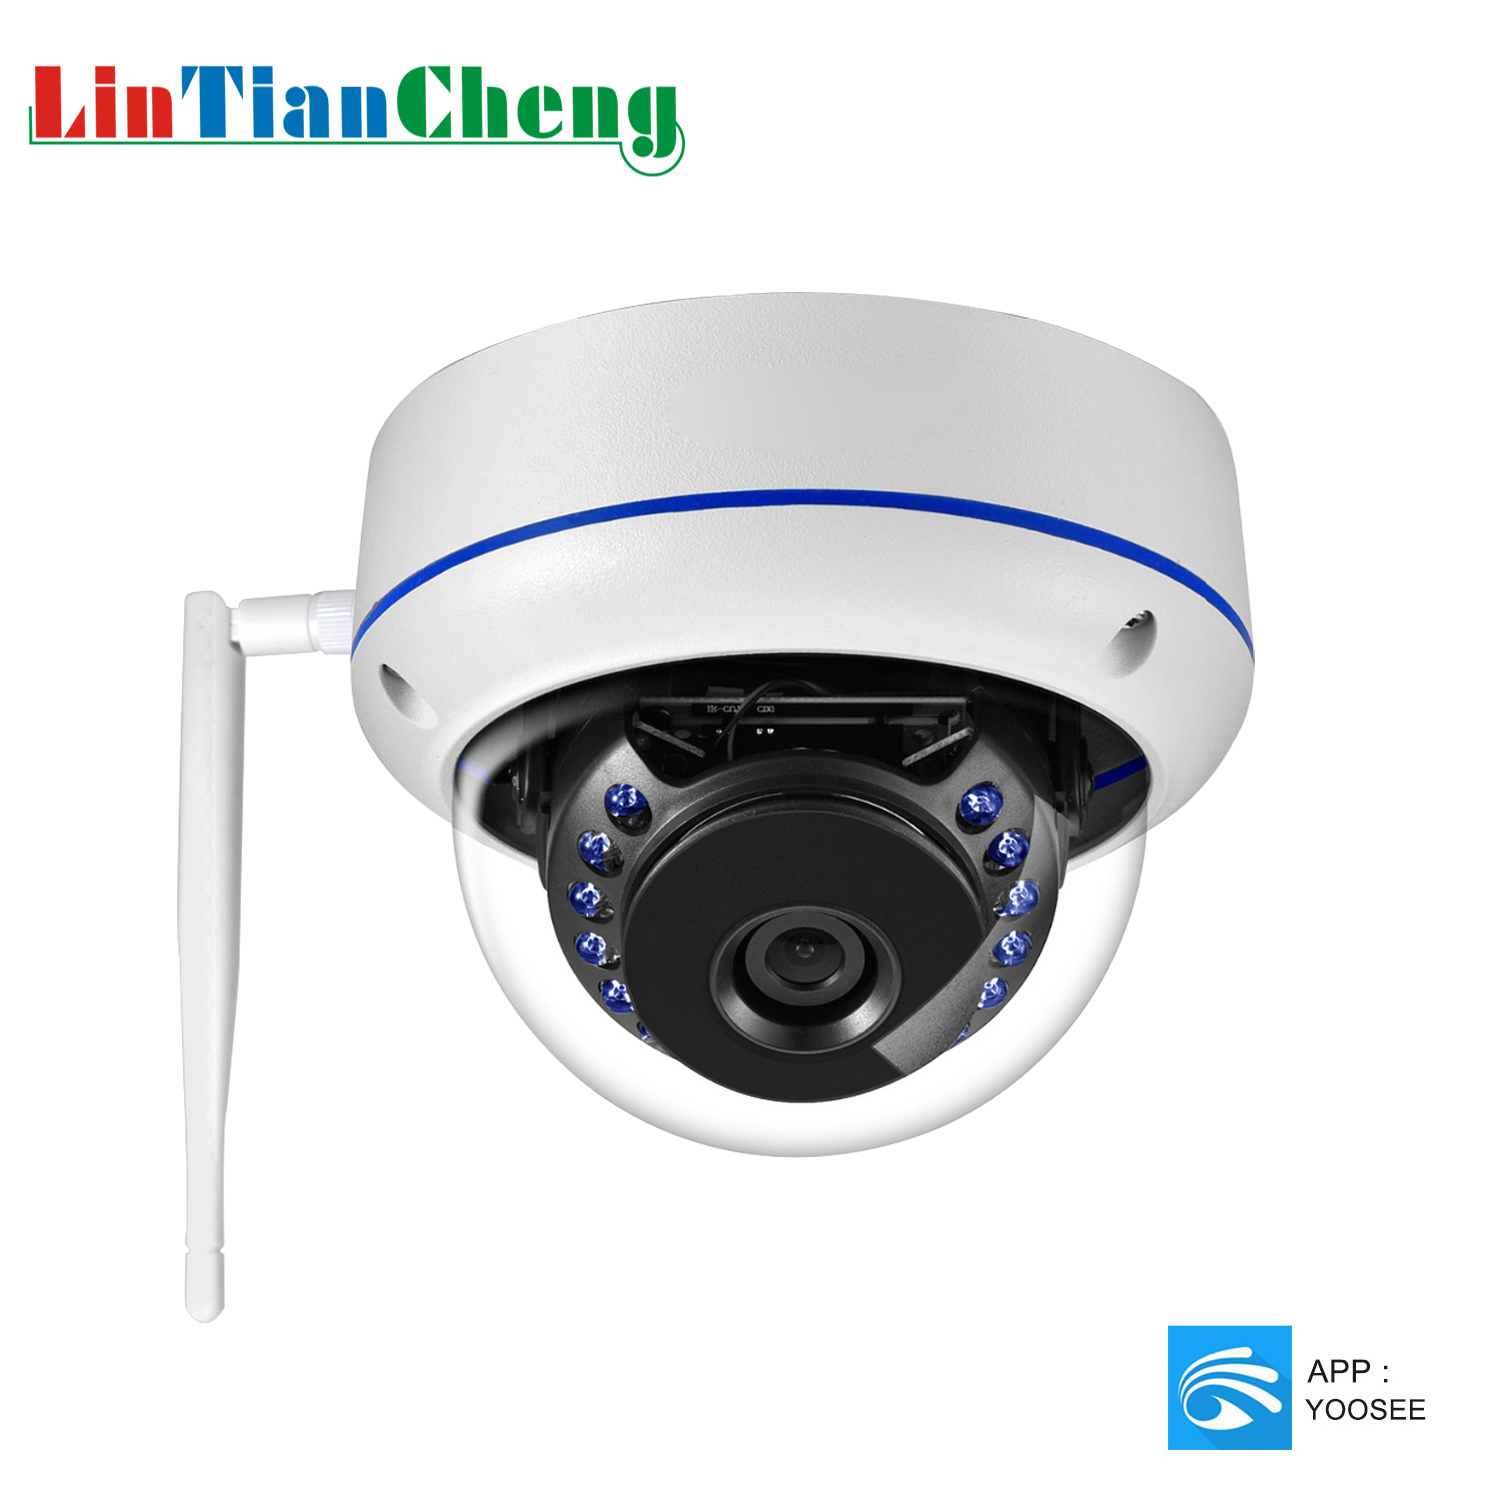 2019 Wifi IP Camera Dome 1080P HD IR Night Vision Home Security CCTV Surveillance Camera Wireless Indoor Monitor Cam Yoosee APP